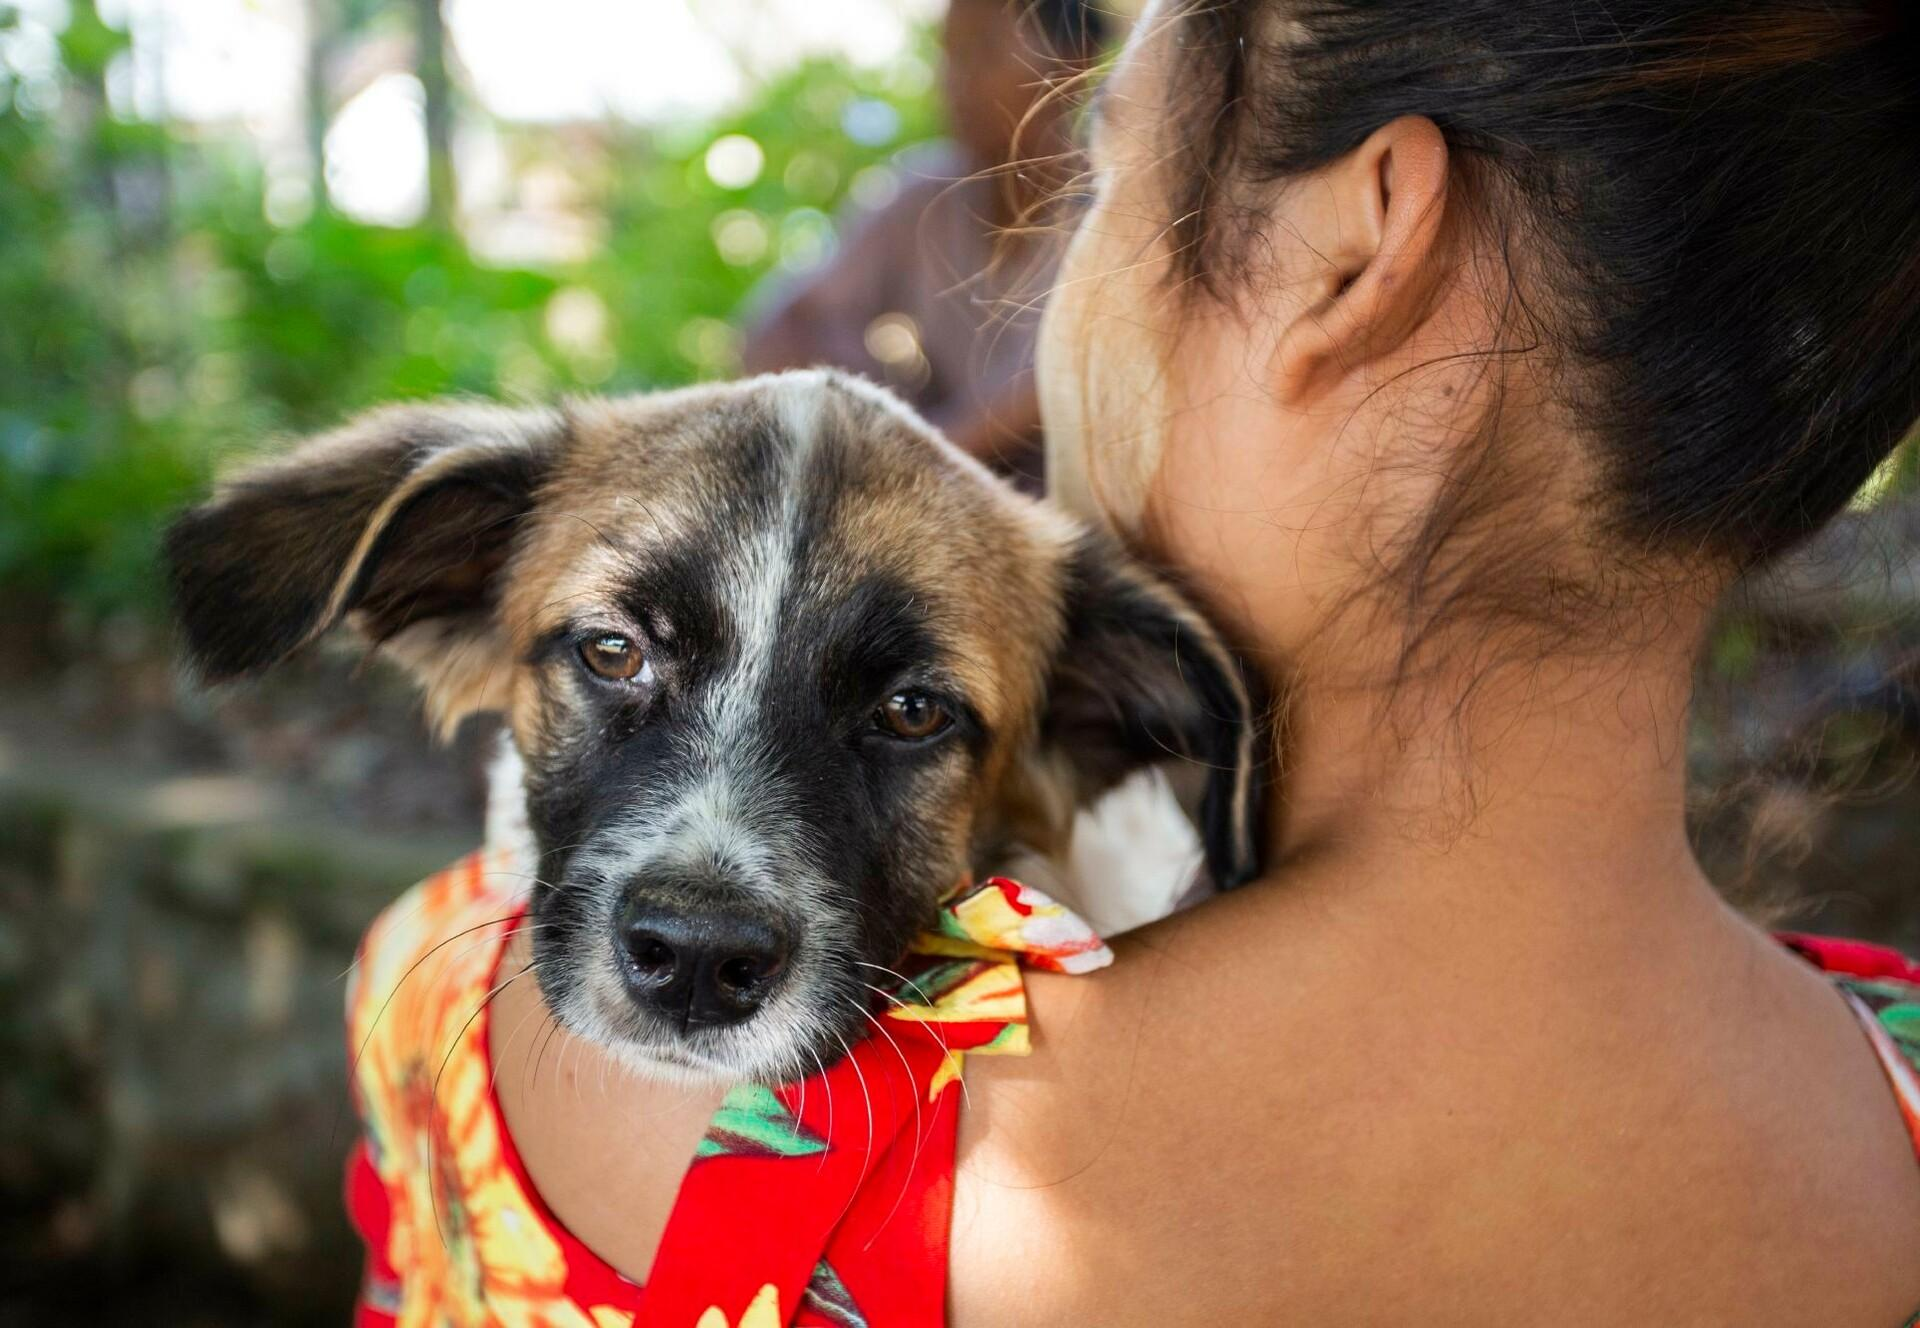 30,000 animals vaccinated against rabies